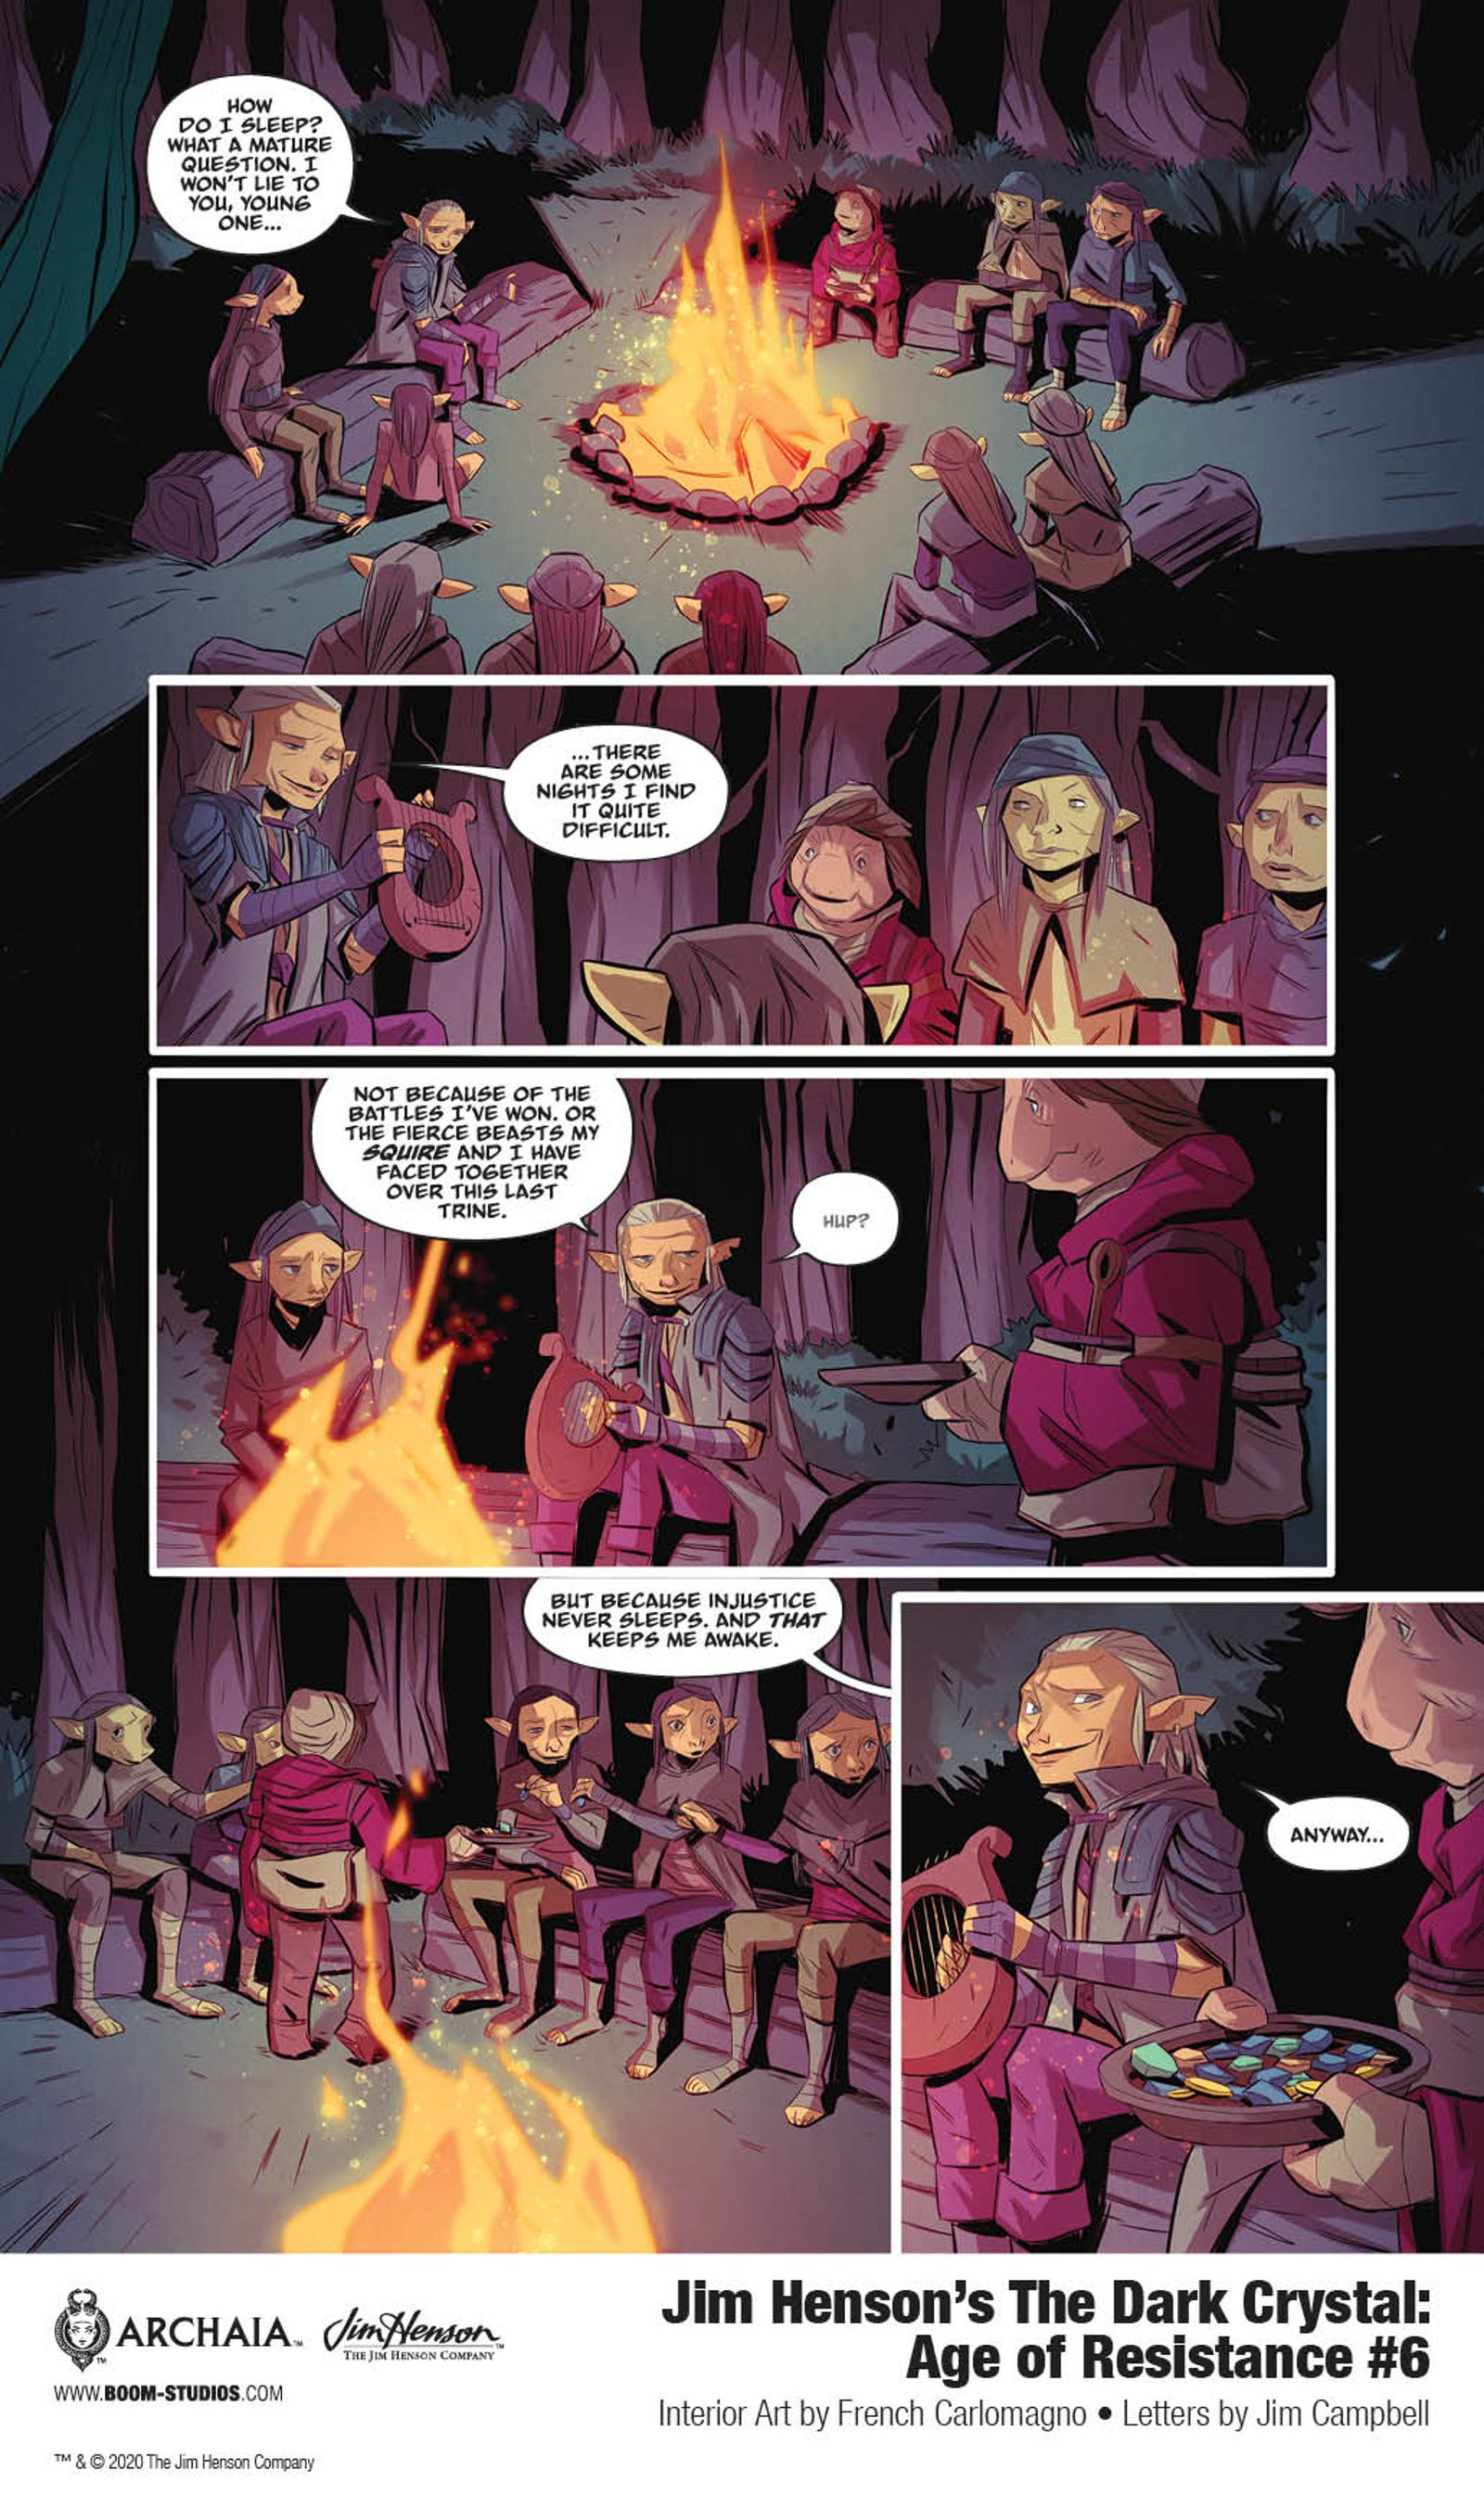 Barfinnious and Hup continue their travels in this Dark Crystal: Age of Resistance #6 preview.